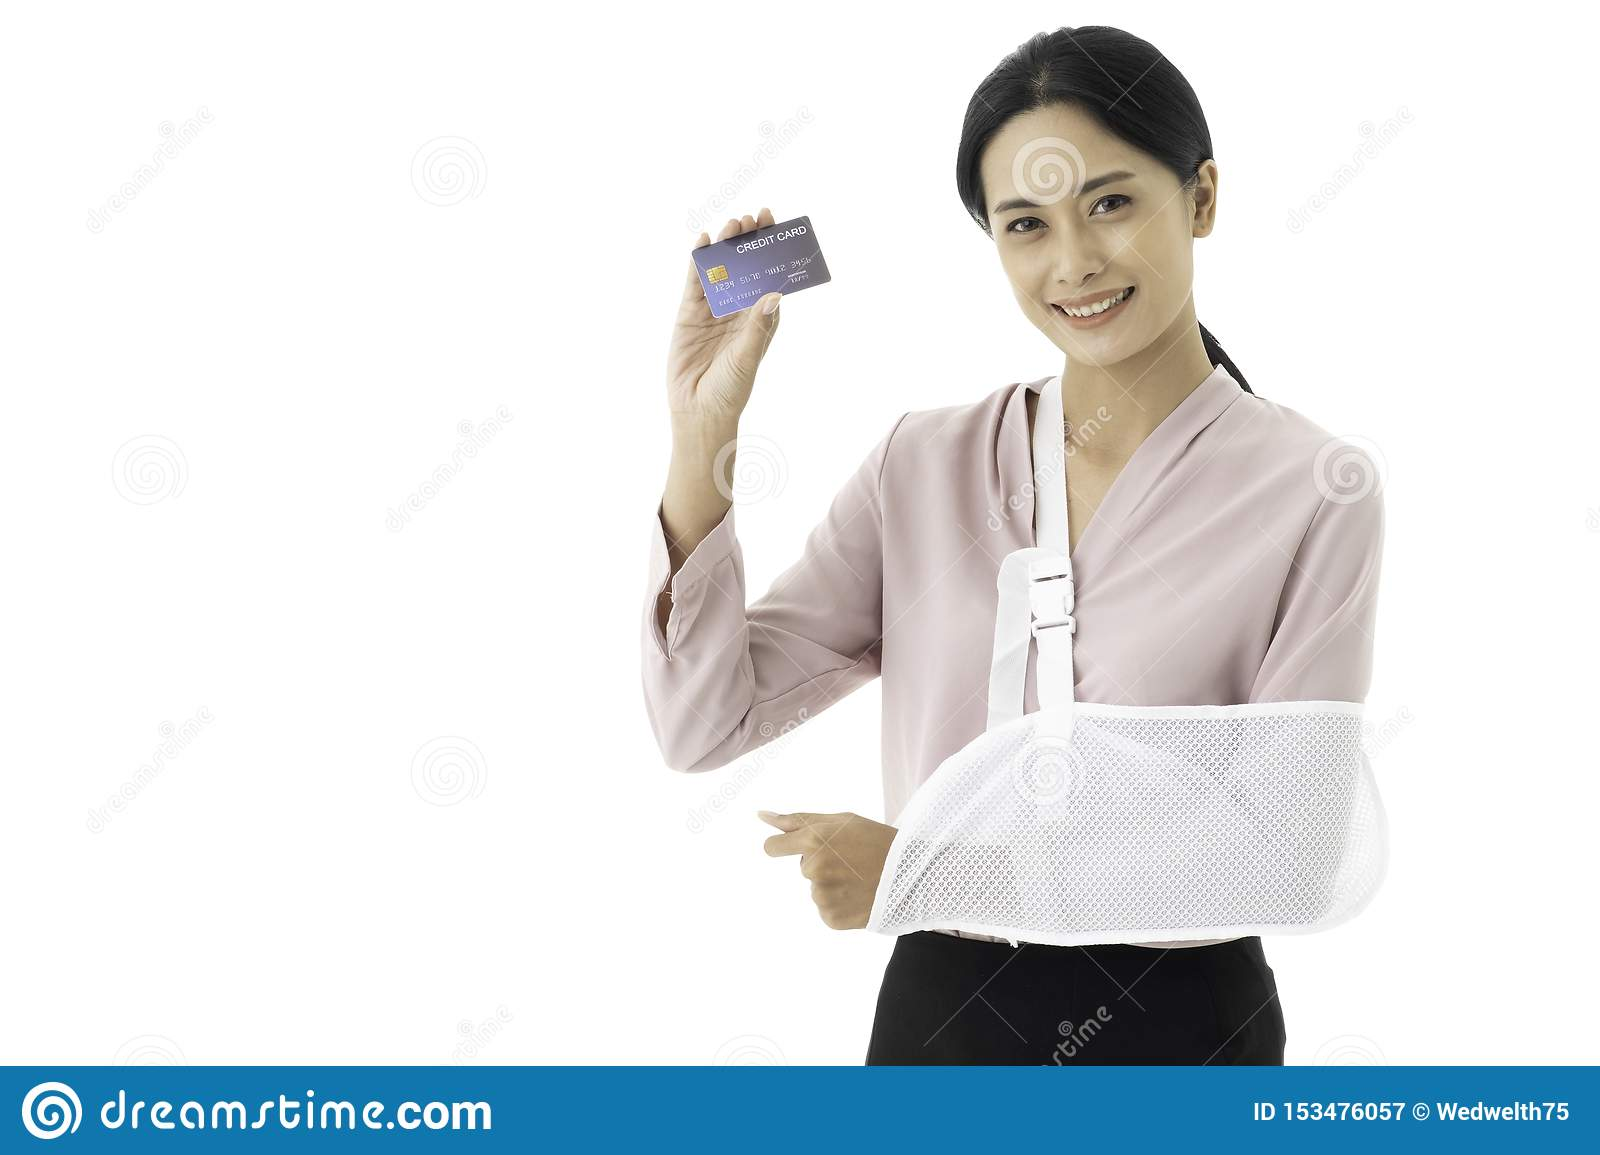 Beautiful young Asian woman is injured with a broken arm and put on arm sling